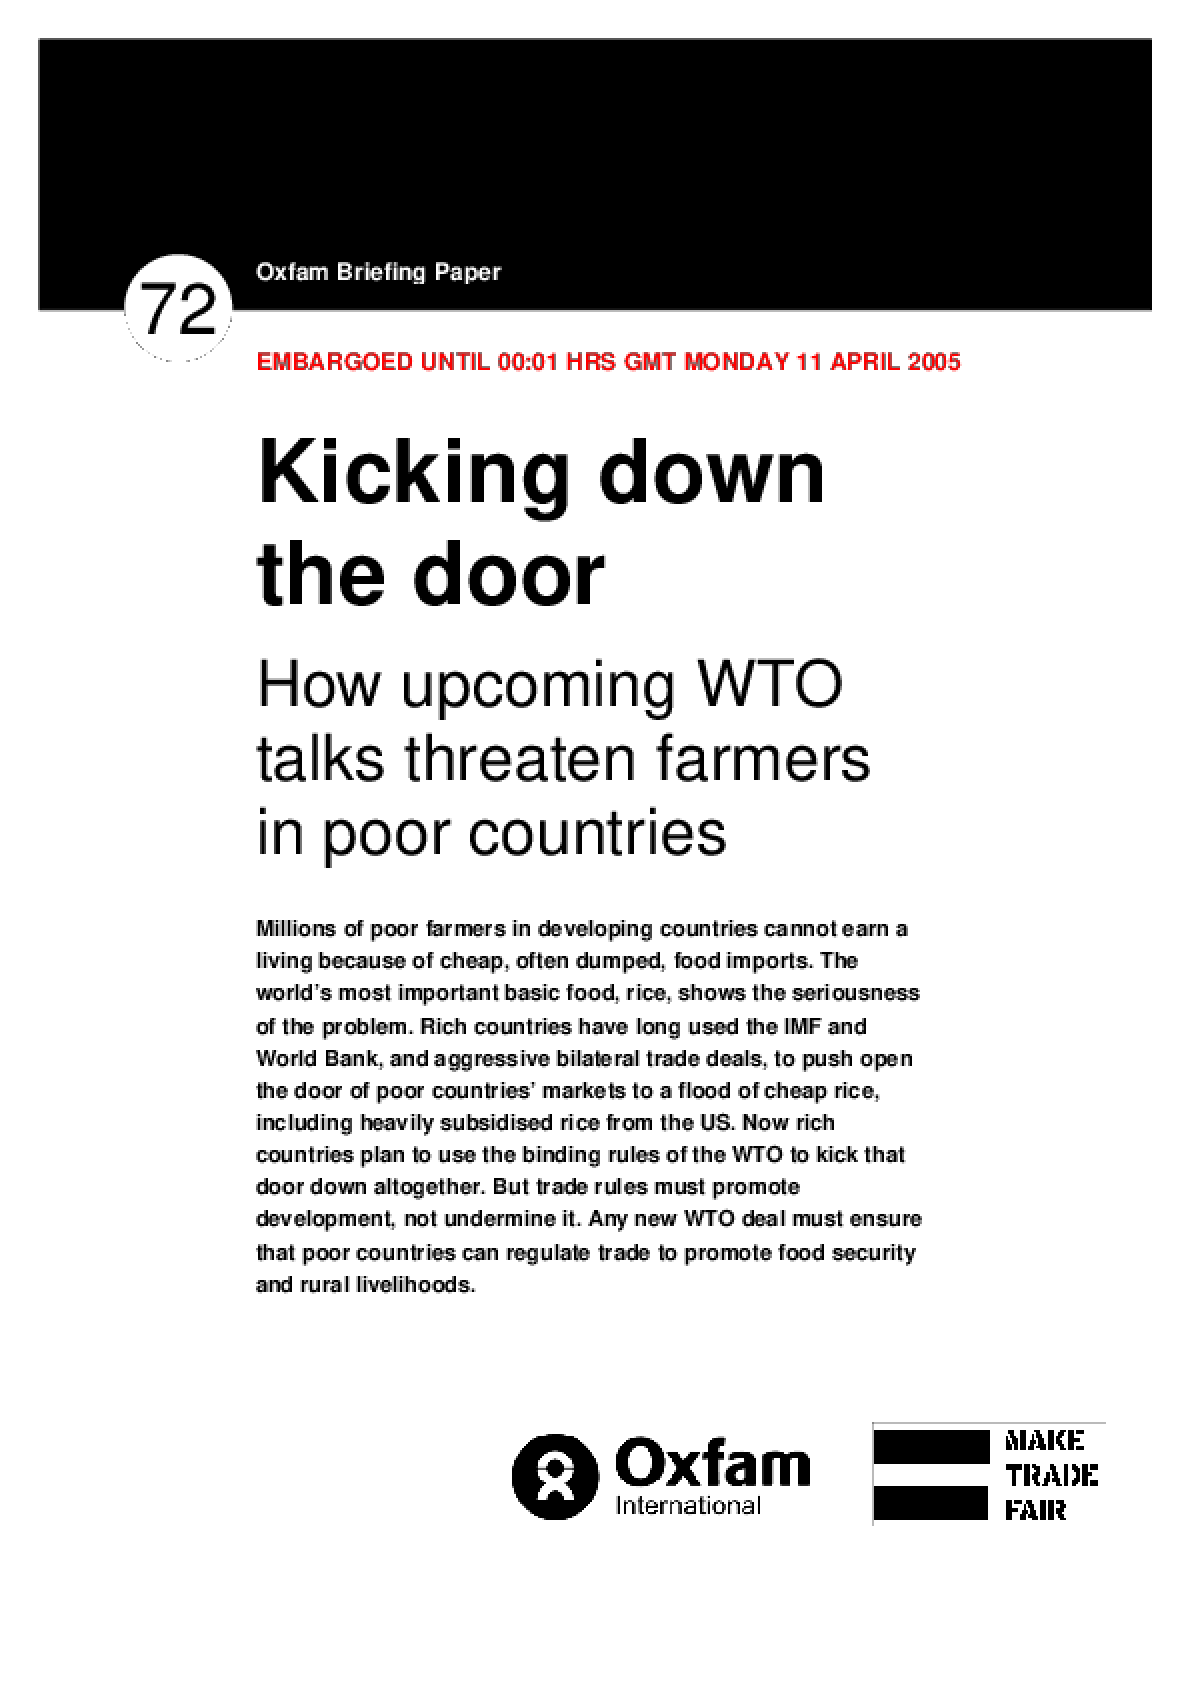 Kicking Down the Door: How upcoming WTO talks threaten farmers in poor countries